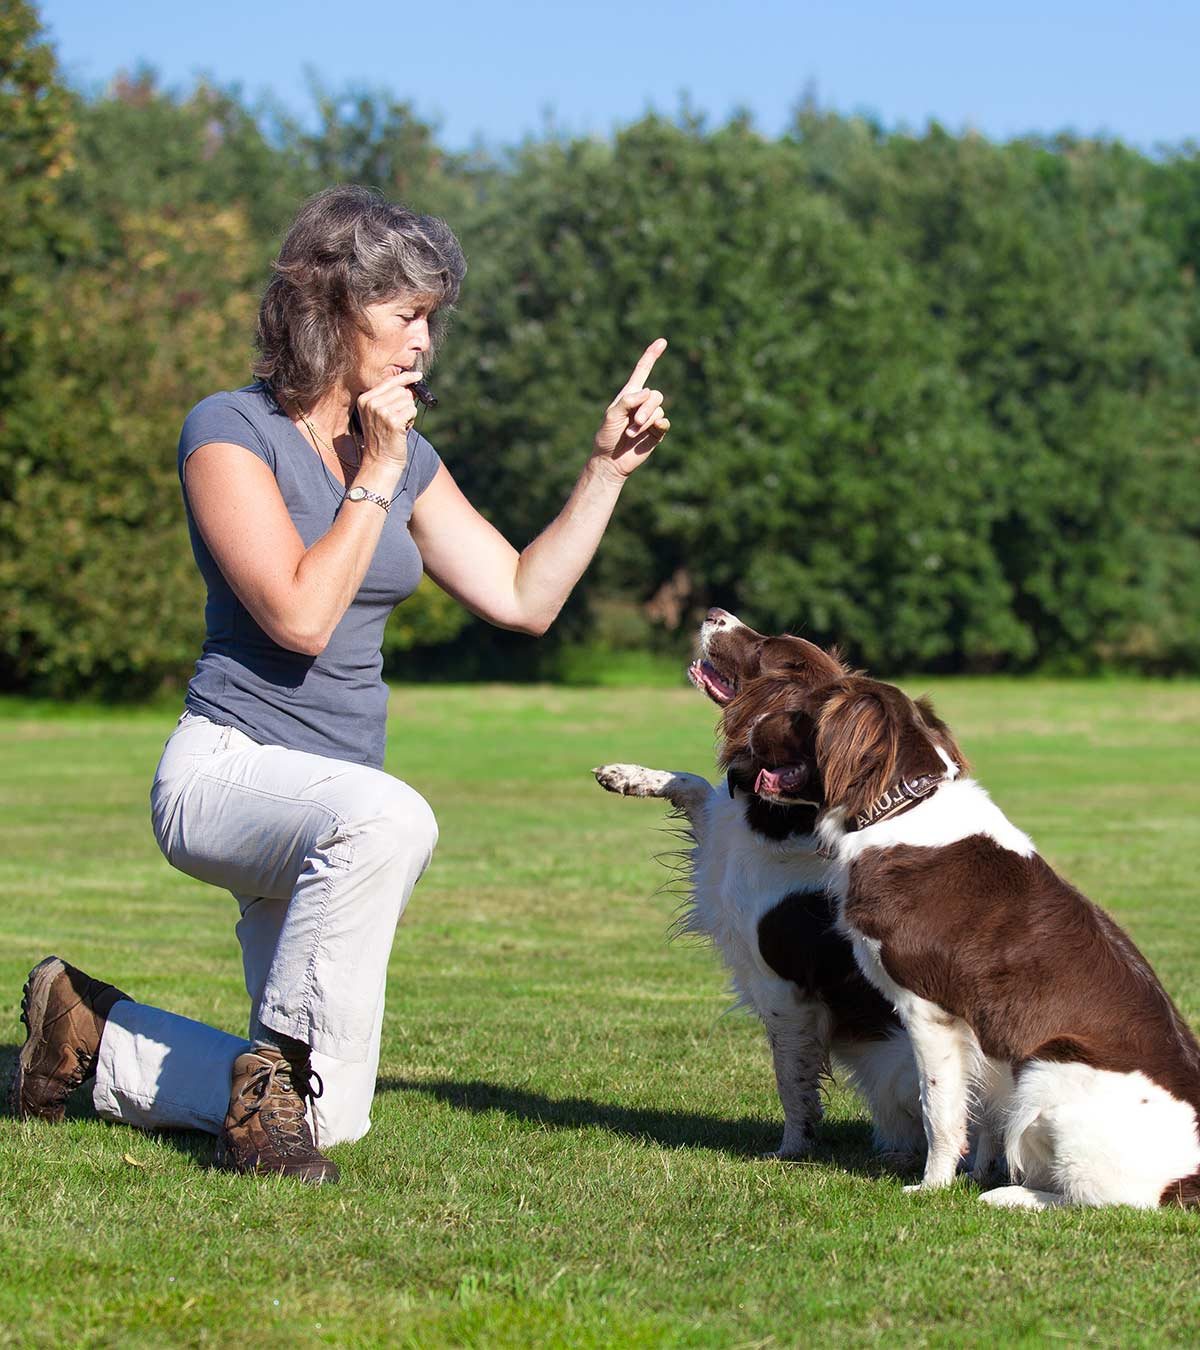 Best Dog Whistles - How They Work And What To Look For